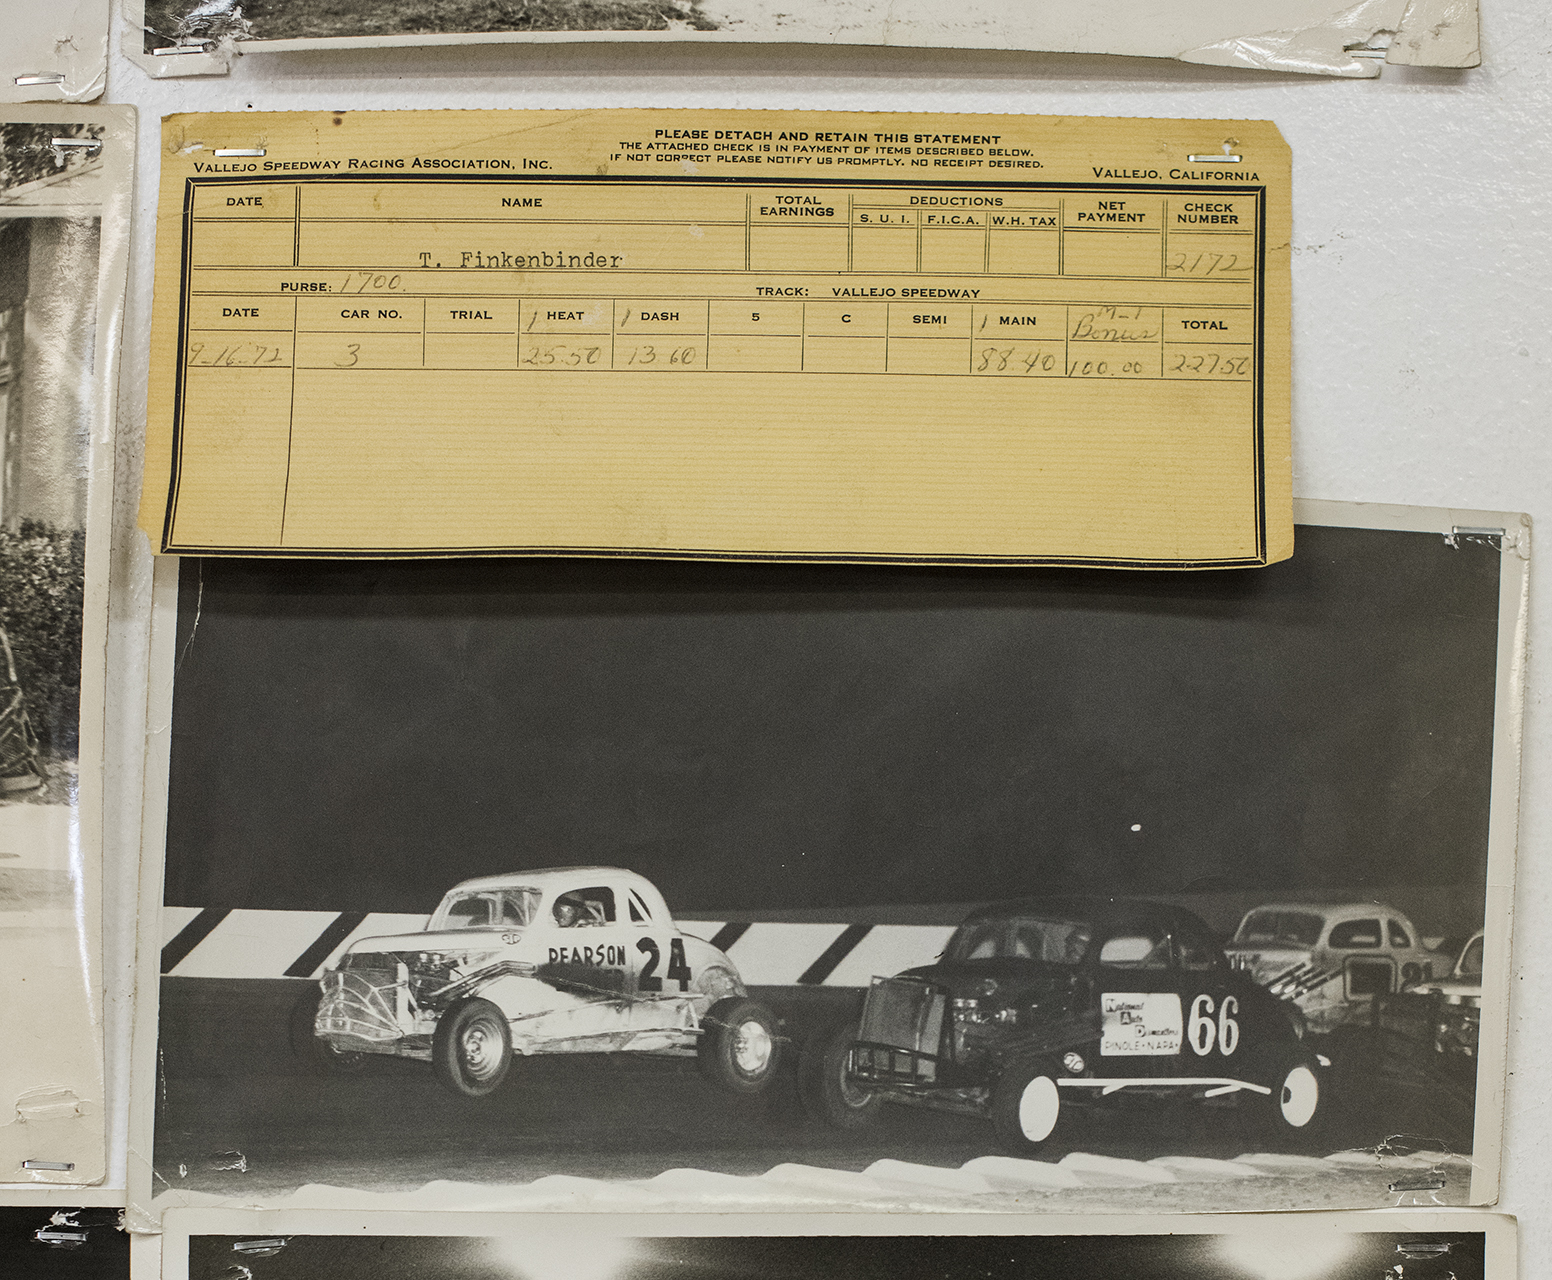 """A 1972 check from Vallejo Speedway shows a $100 passing bonus. """"That's pretty good money for 1972,"""" says Finkenbinder."""